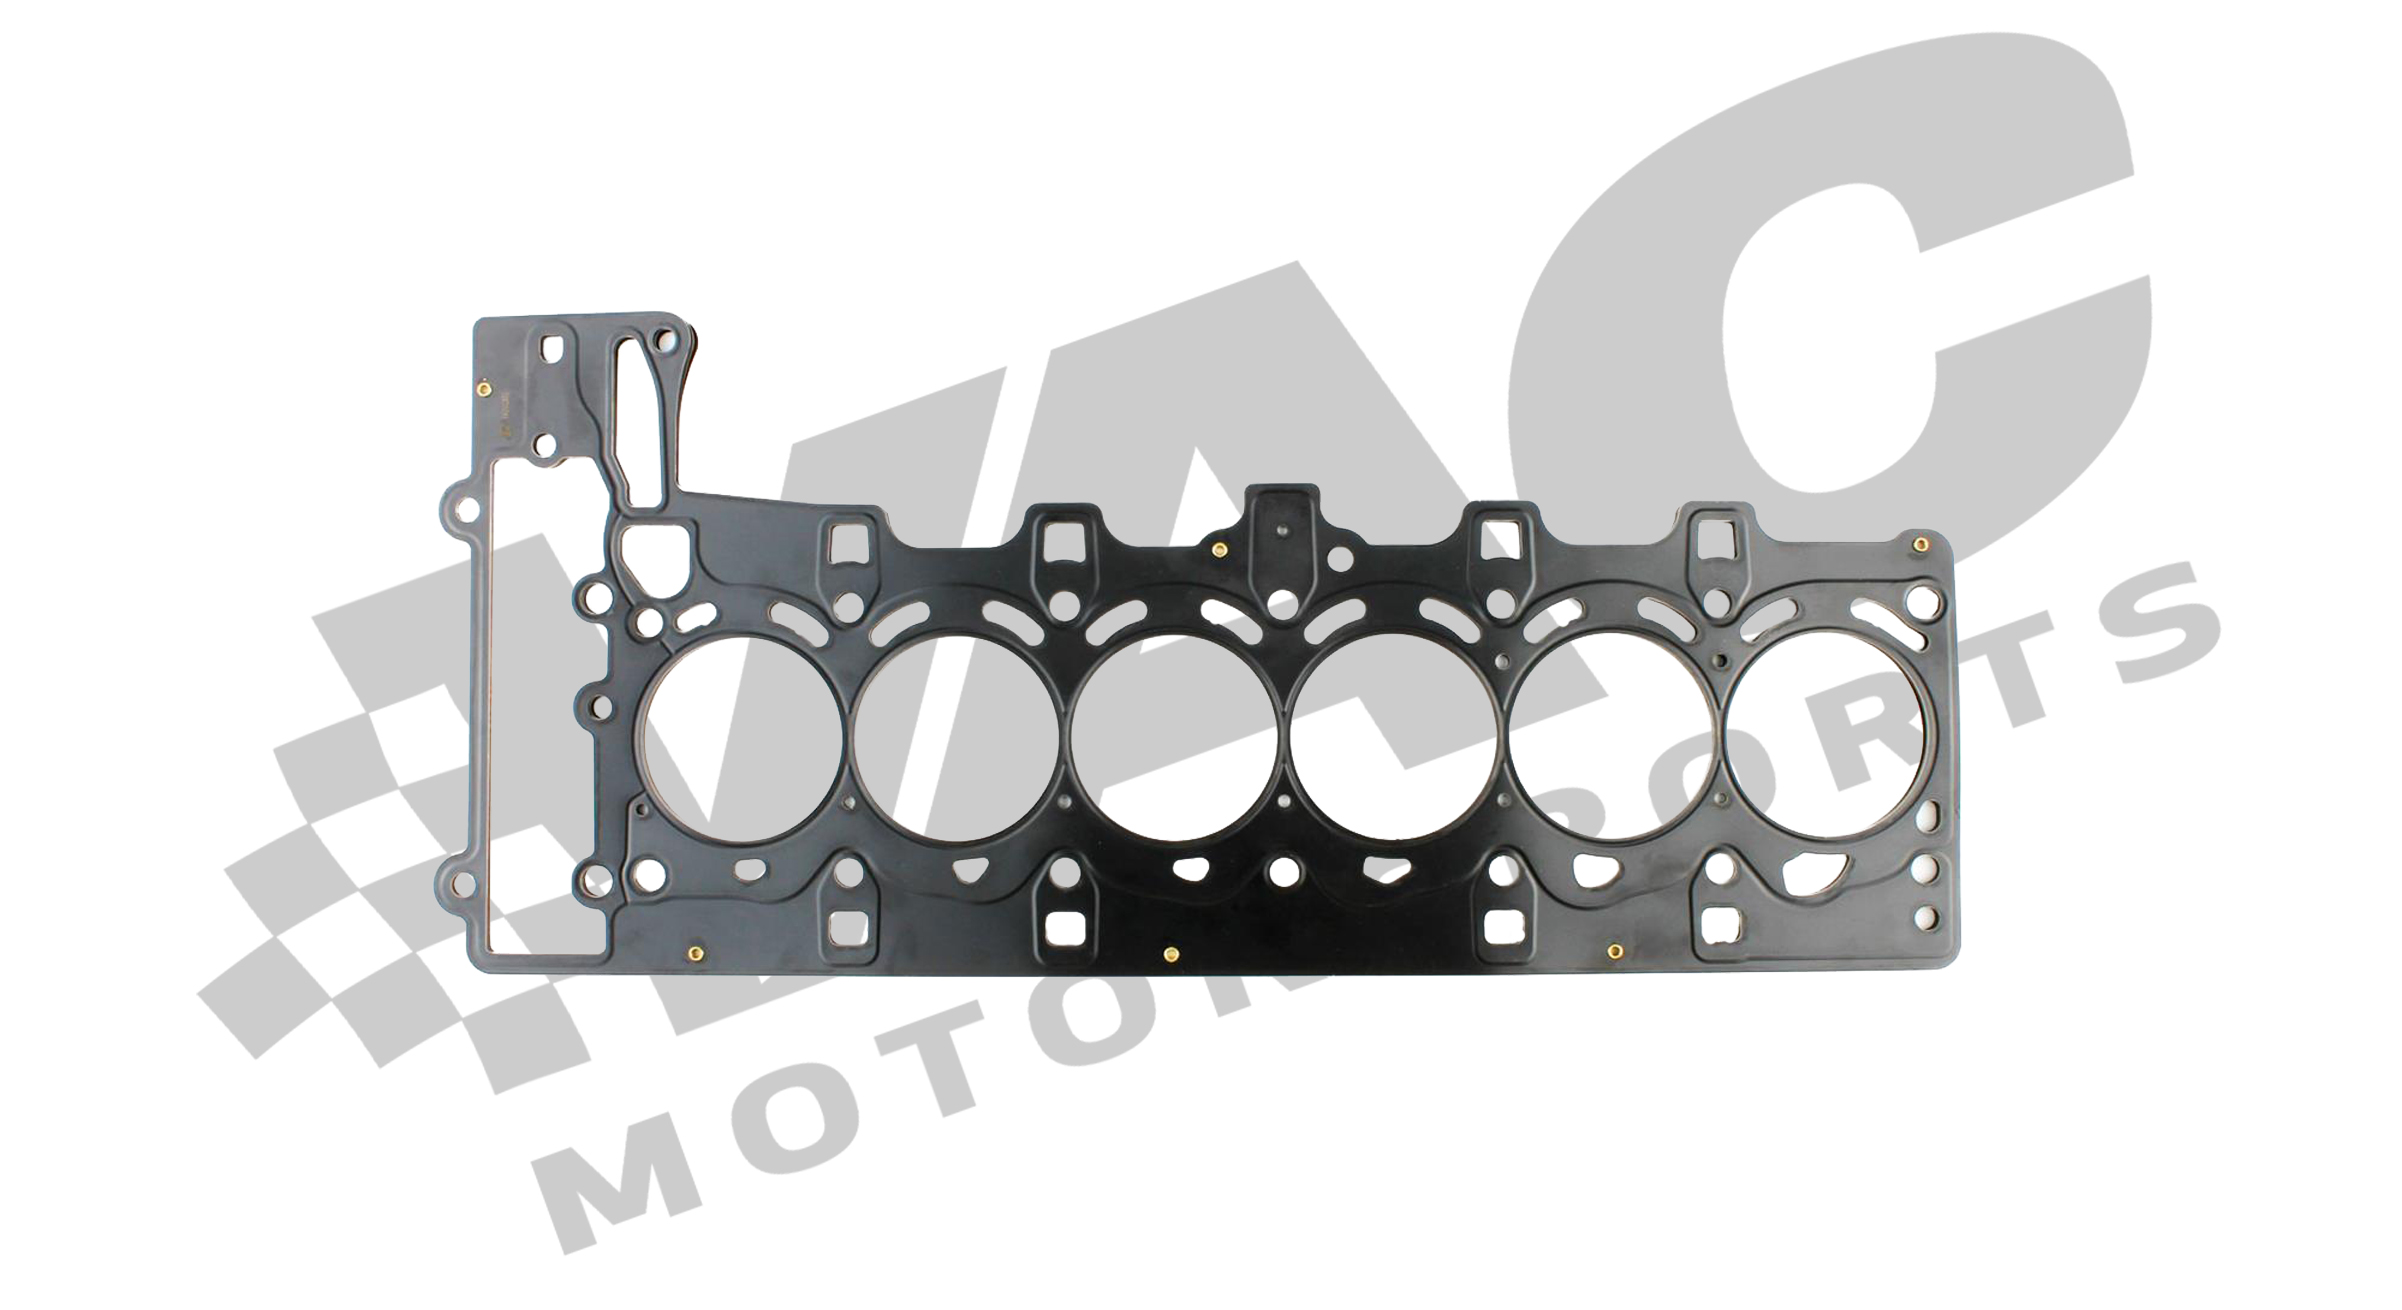 VAC PERFORMANCE MLS/MULTI LAYERED STEEL HEAD GASKET (BMW N54) MAIN